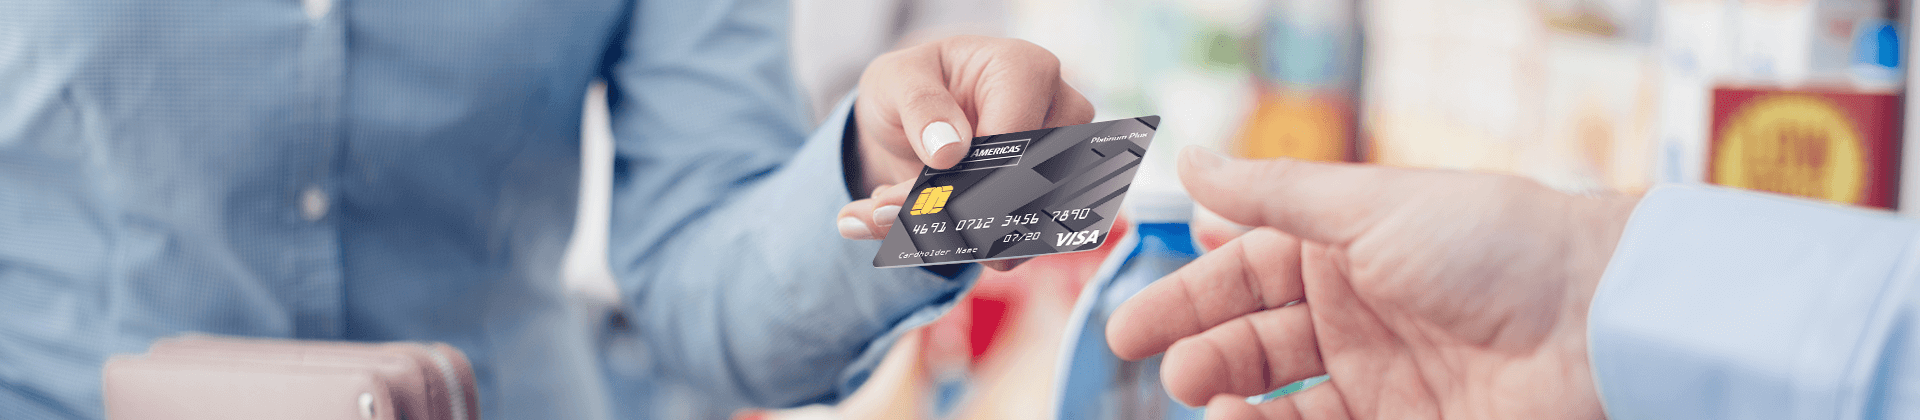 Secured Credit Cards for International Clients